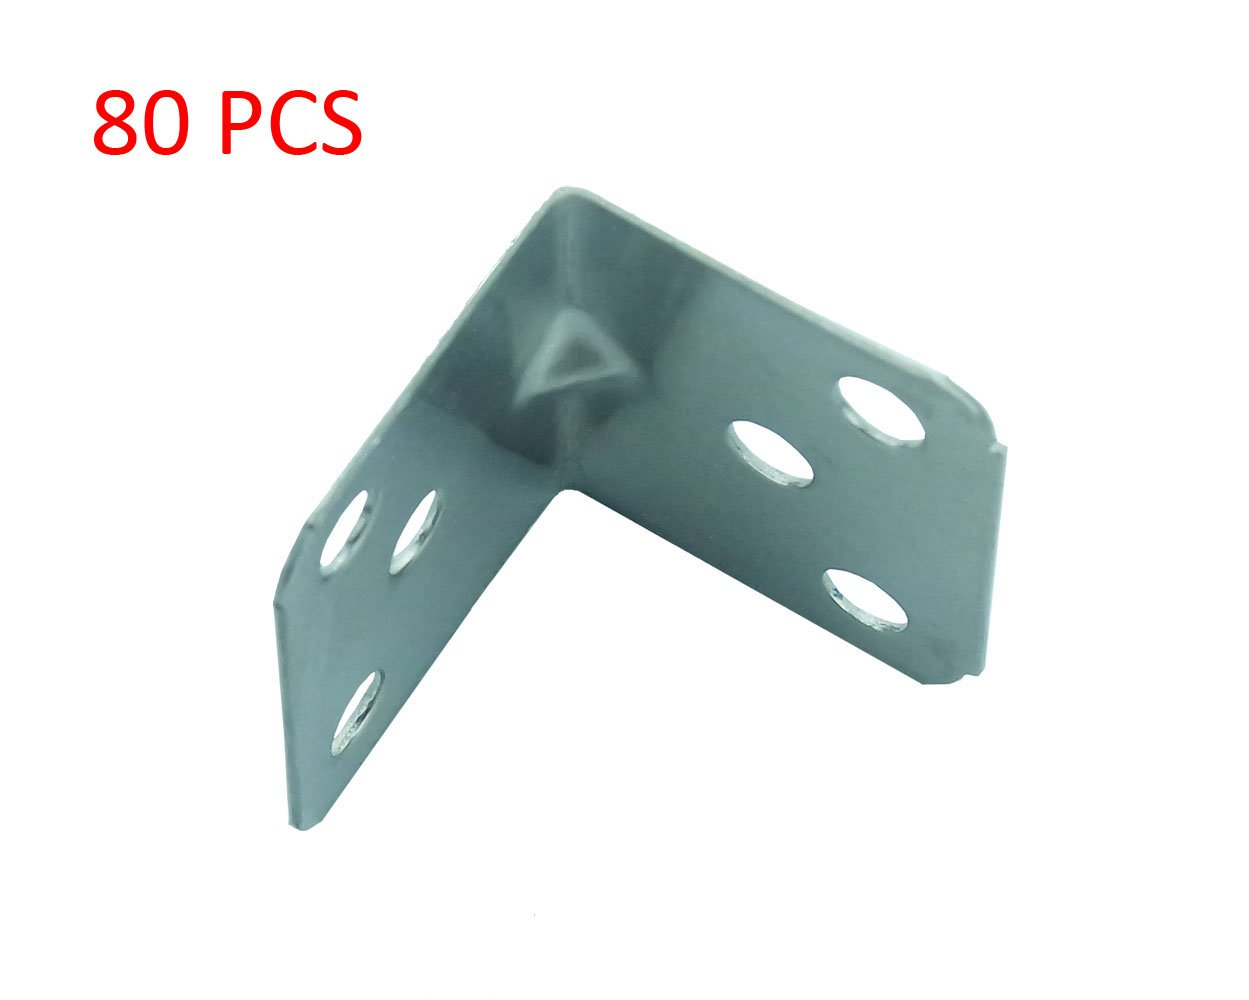 Smart Cool ® Stainless steel angle code right angle 6 hole 35mm x 29mm x1.2mm thick 80Pcs